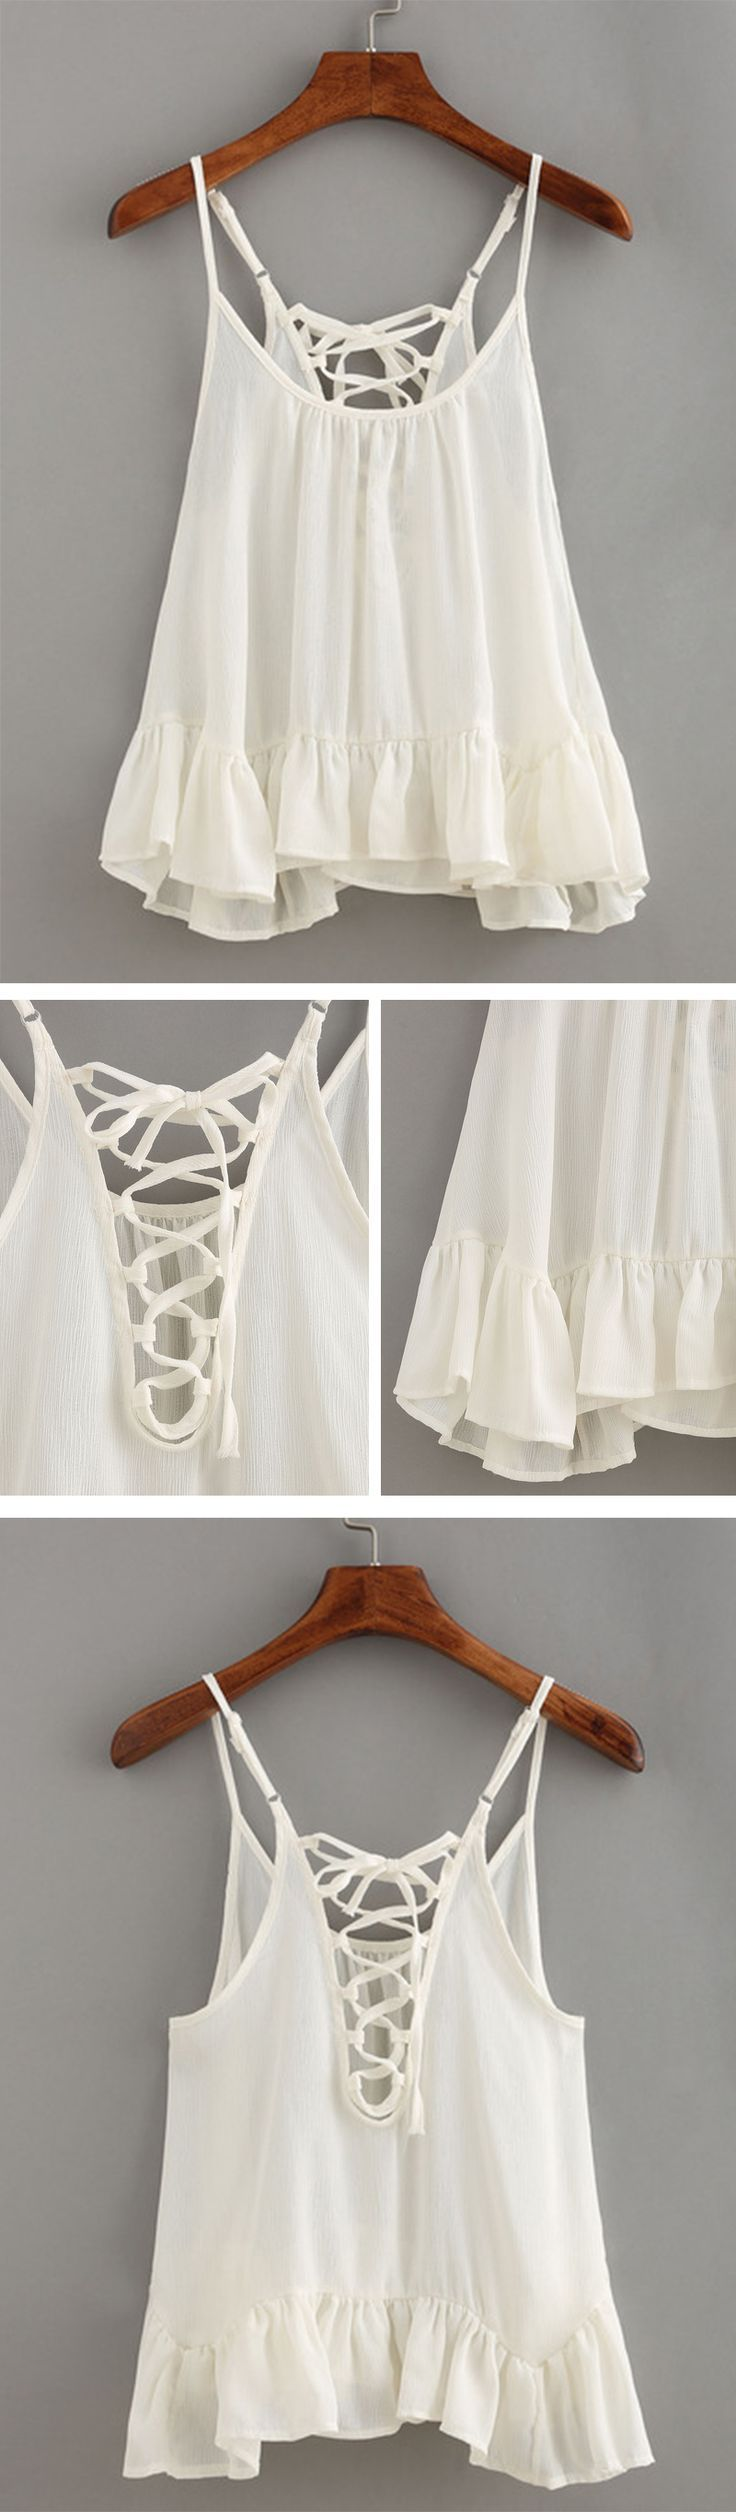 A dreaming Lace-Up Ruffled Hem Cami Top that's great for the girl on a budget. Summer never looked so cute! All what you have been searching will end here.